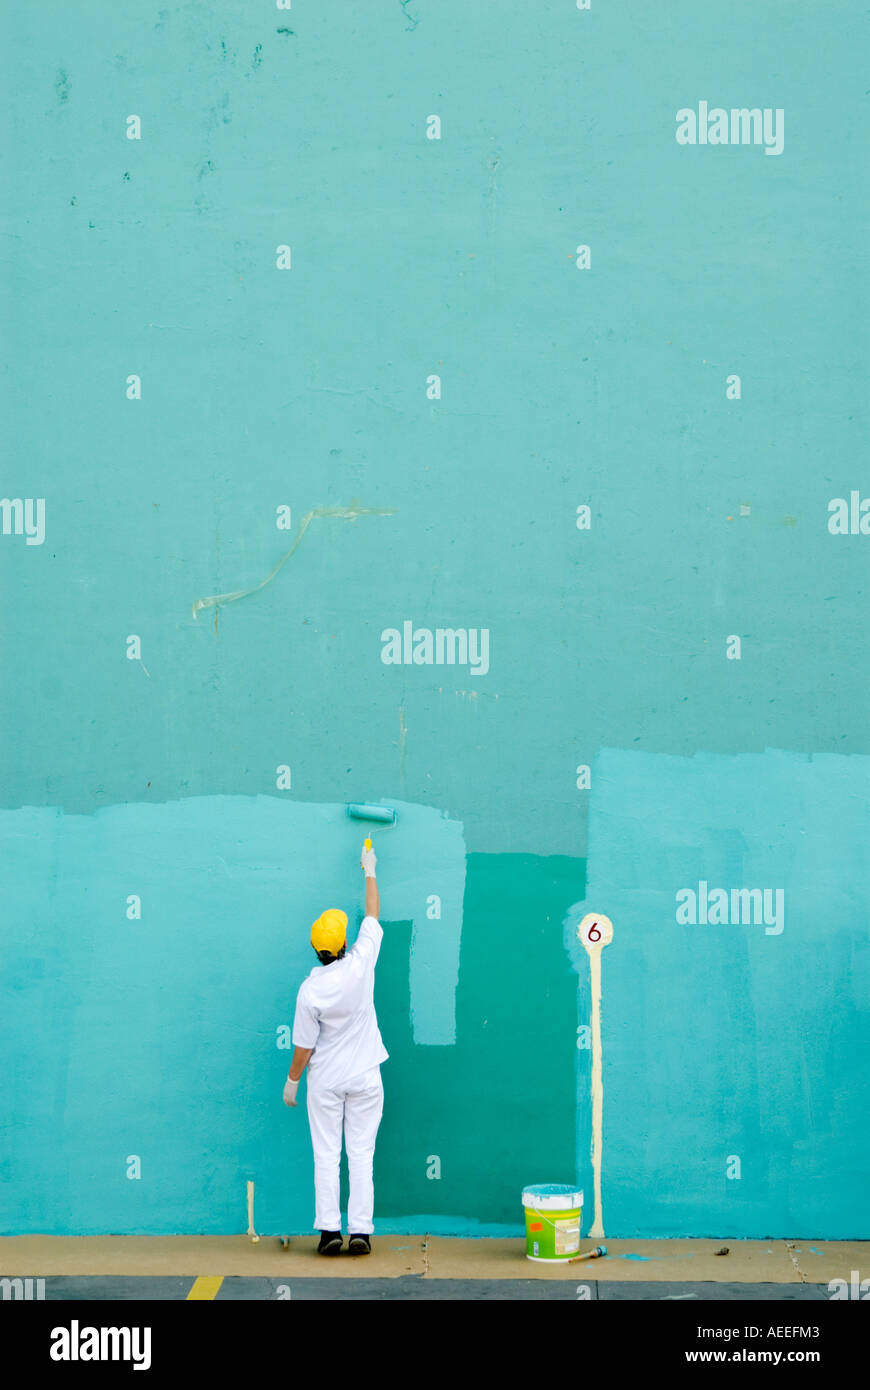 Woman worker painting large blank wall turquoise for game of pelota, Spain - Stock Image